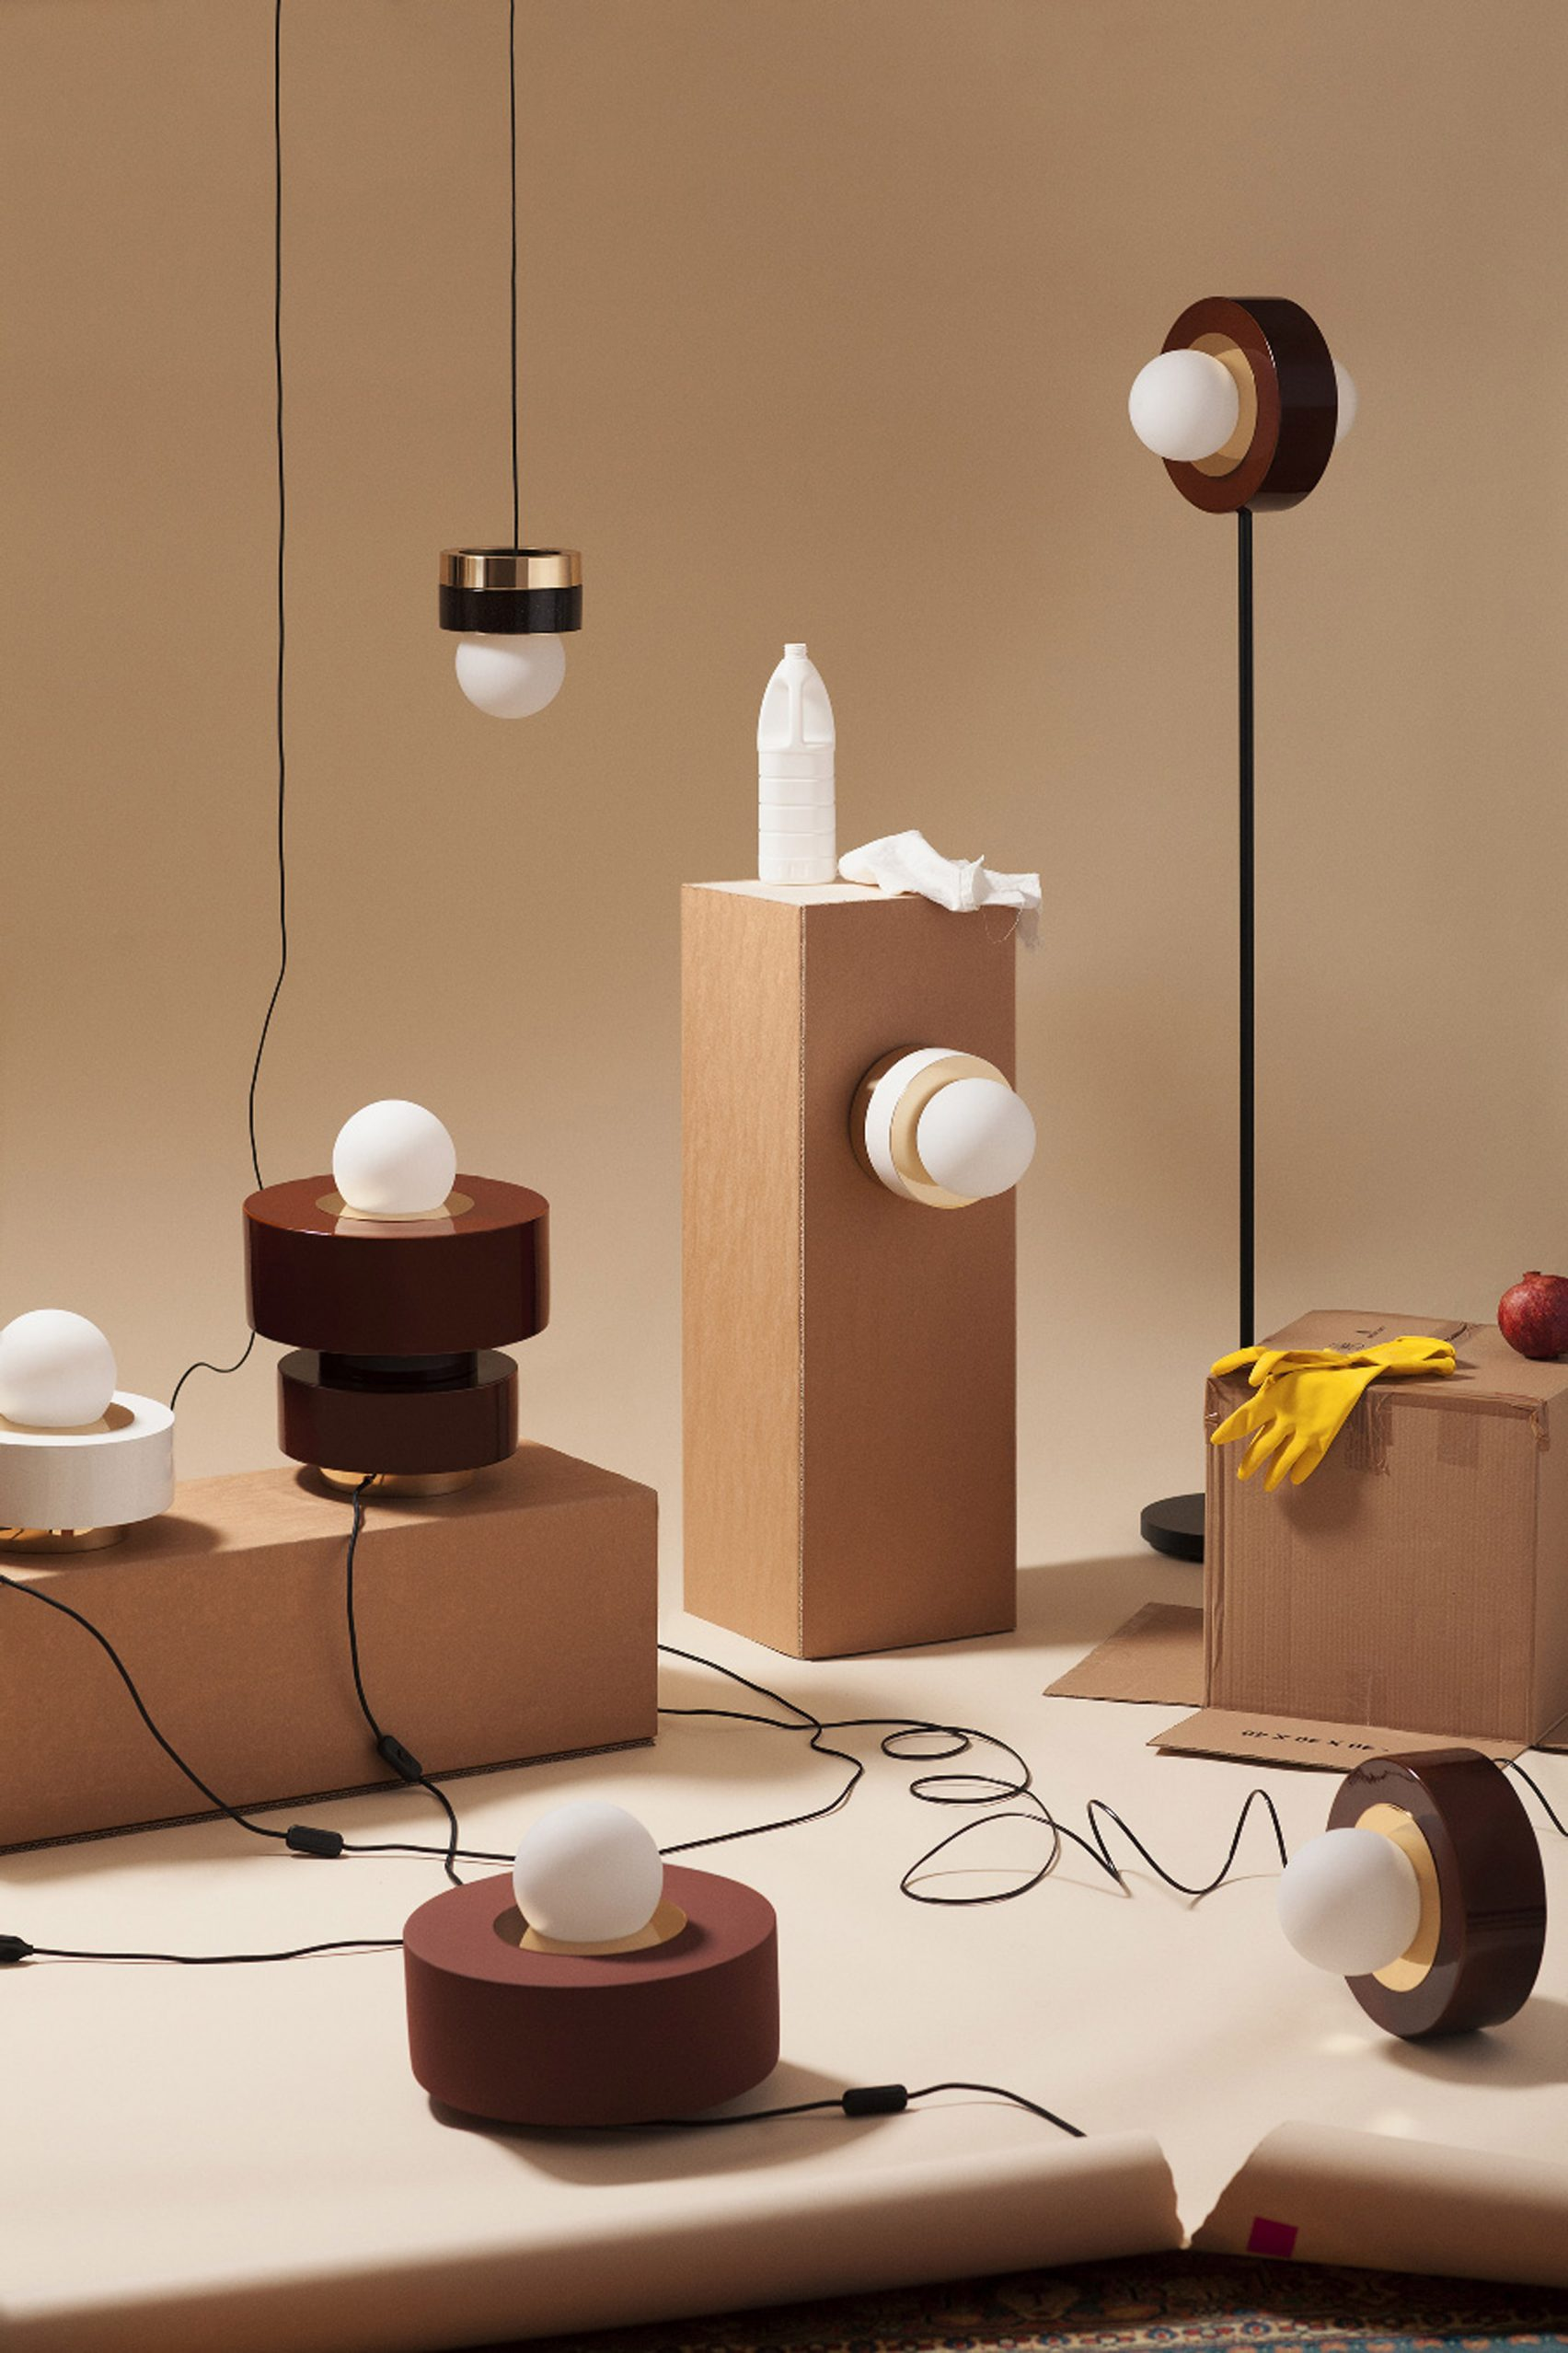 Meet Haos The Collection Of Circular Lamps You Need To See! 1